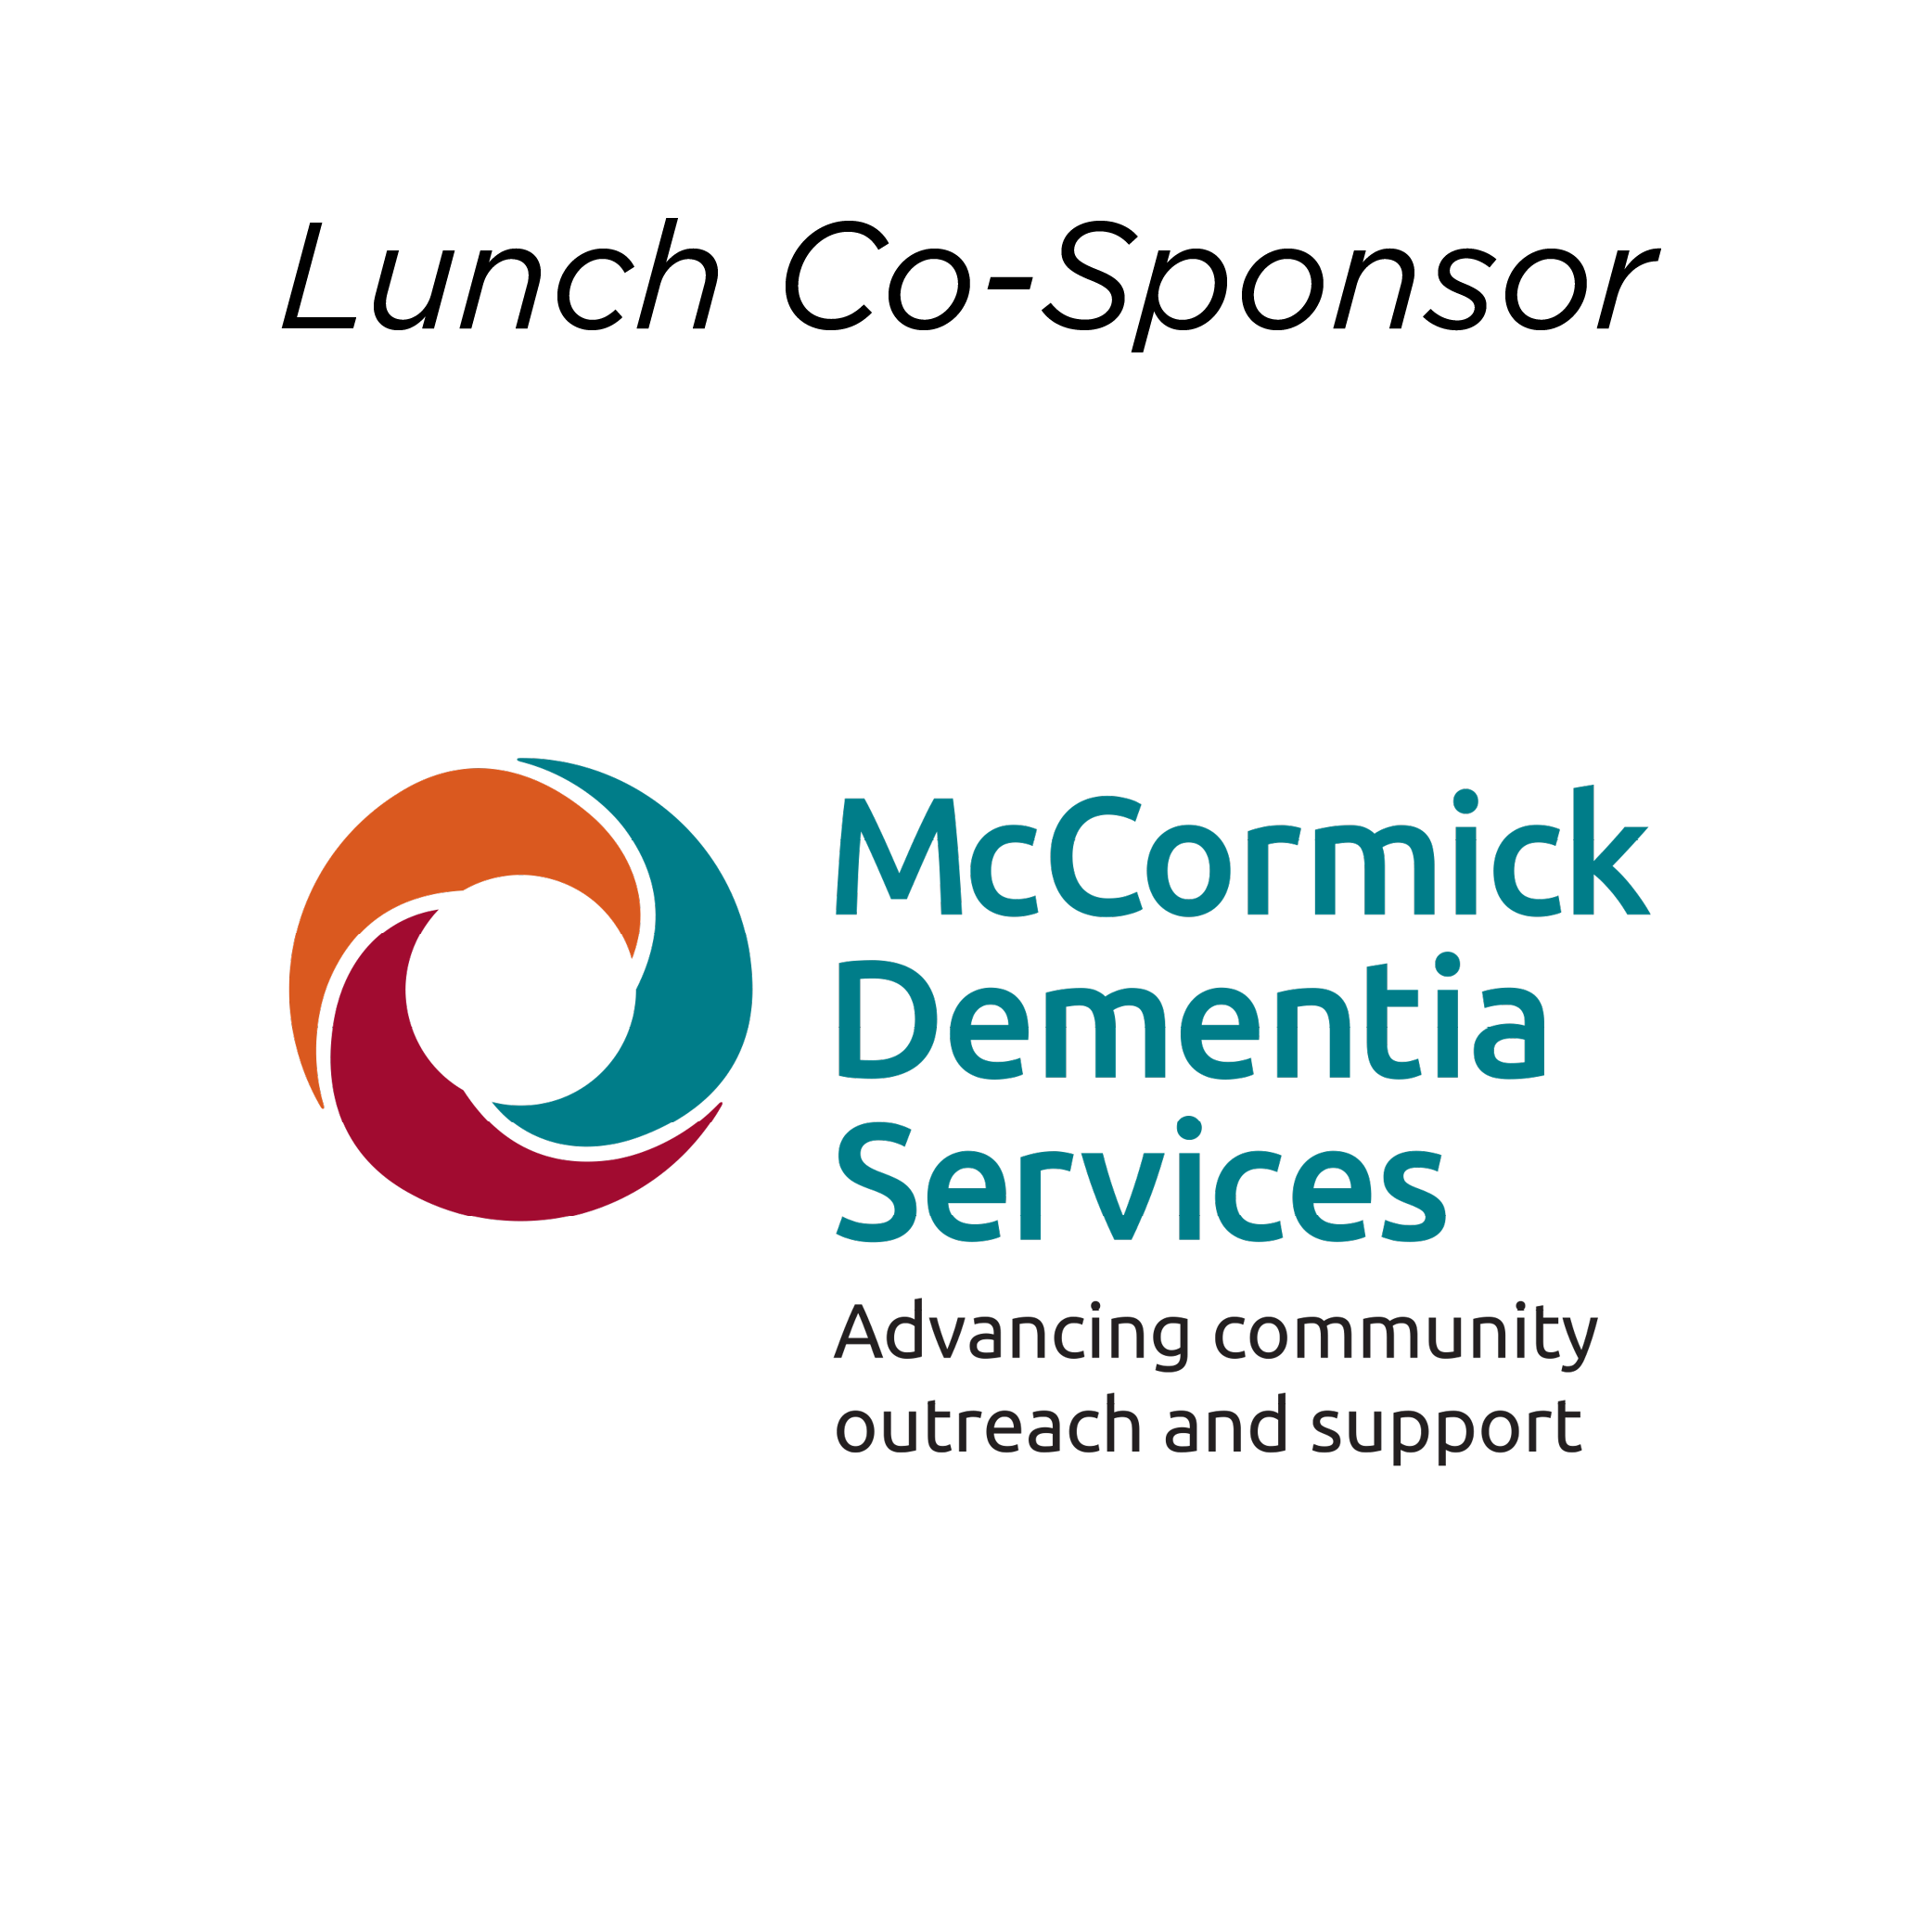 McCormick Dementia Services - Lunch Sponsor